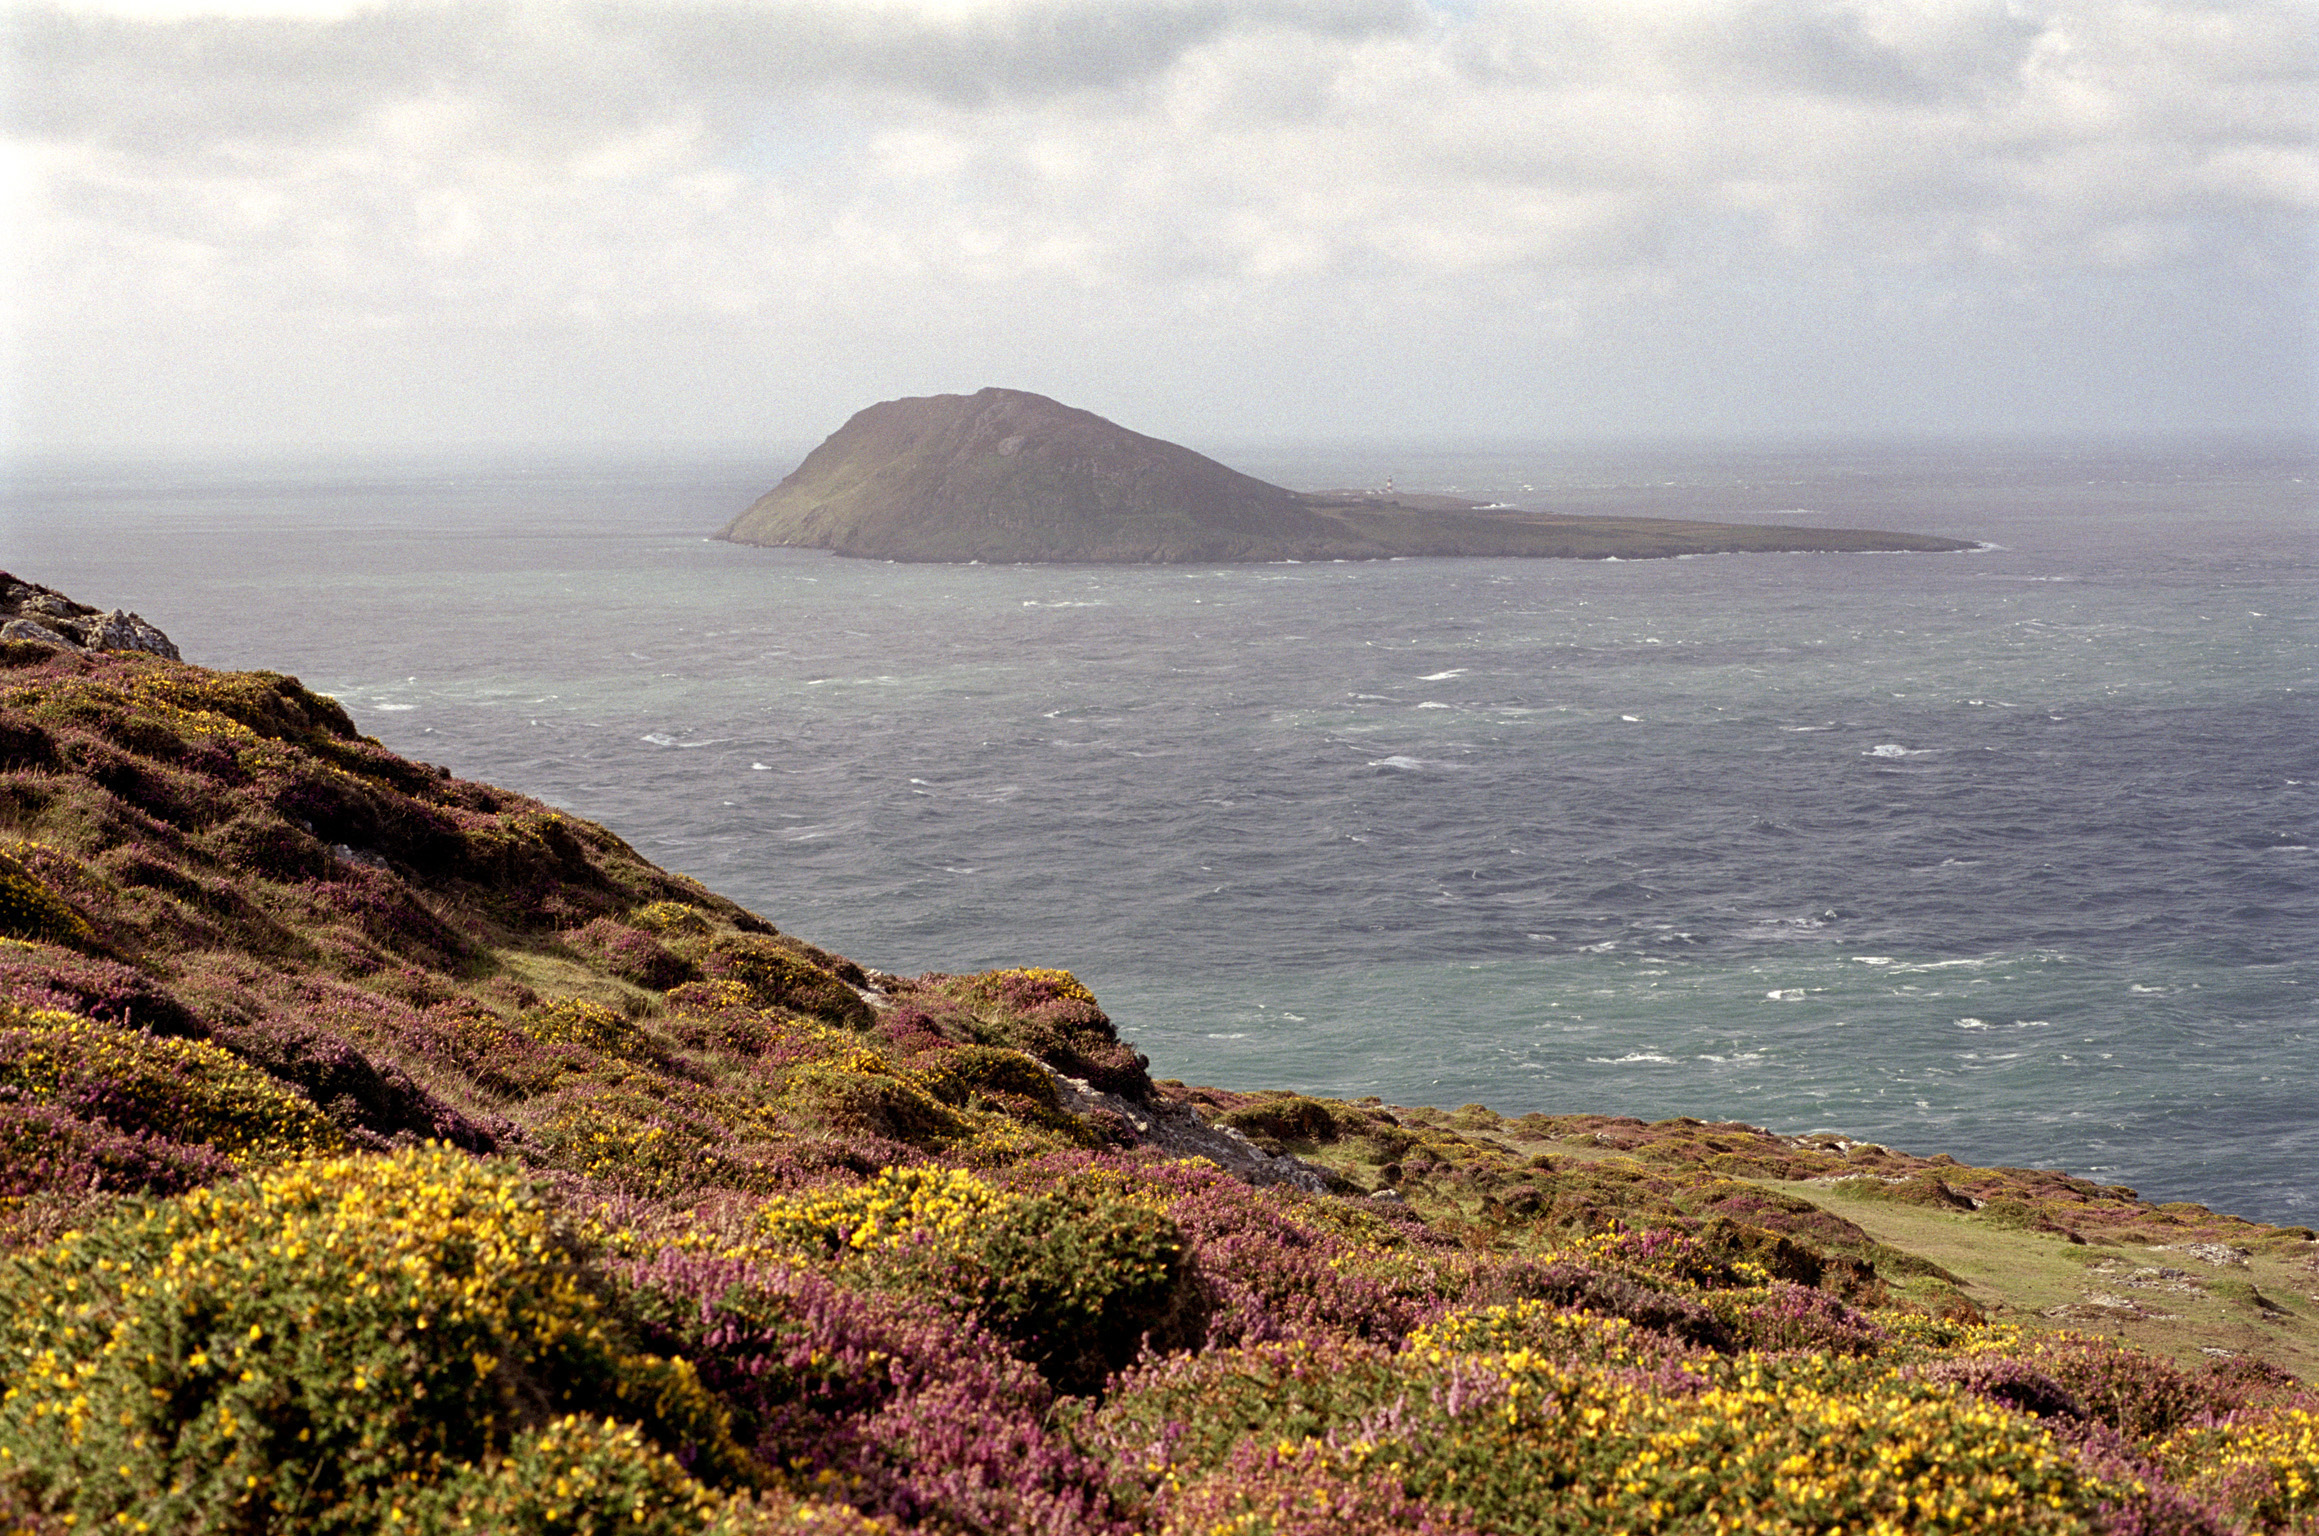 Bardsey Island off the Llyn Peninsula, Gwynedd, Wales, an important religious pilgrimage destination since medieval times with an early monastery